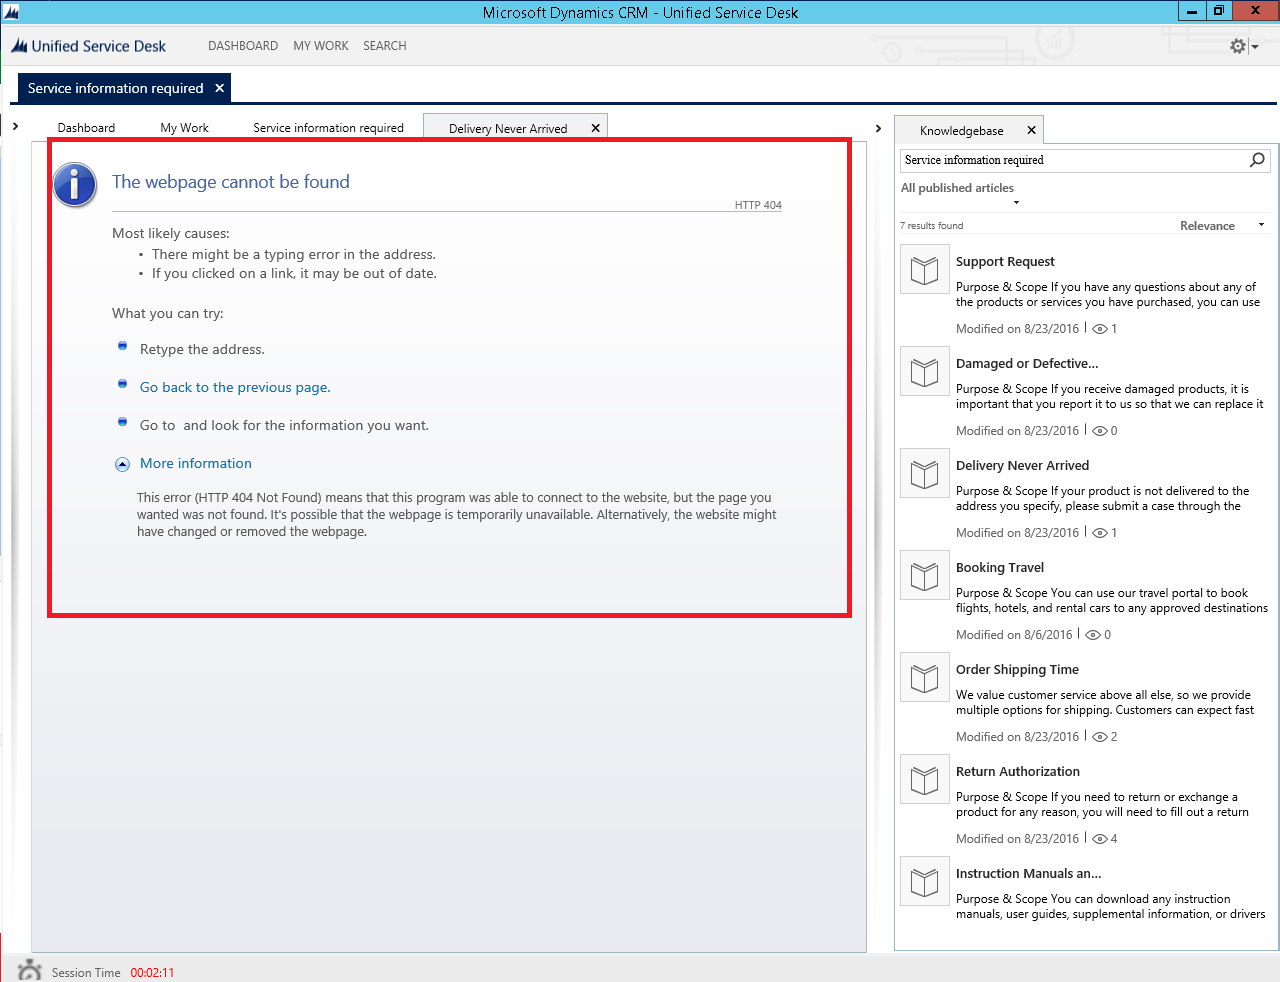 USD - KB not available for preview - Microsoft Dynamics CRM